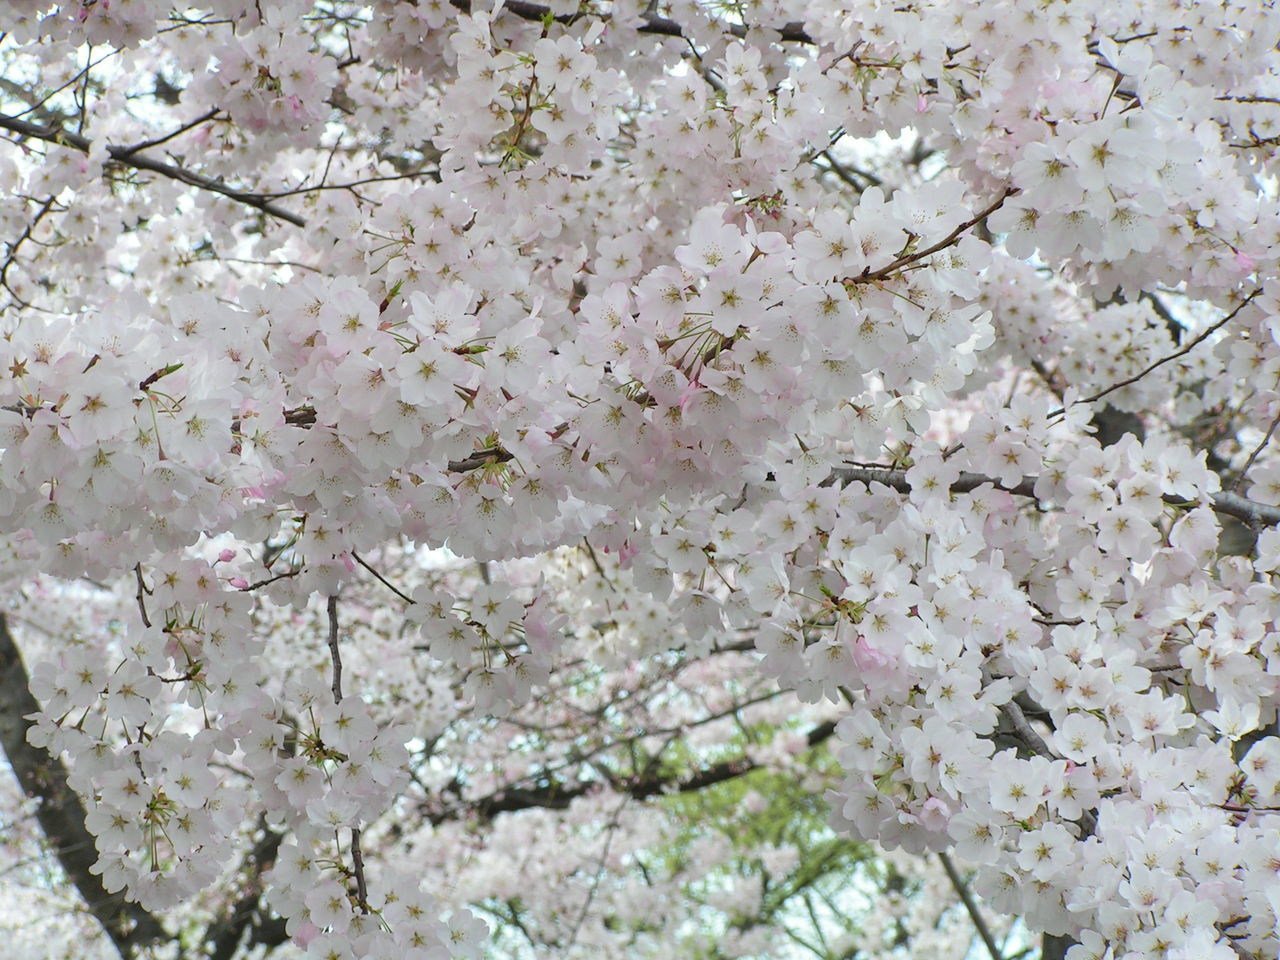 flower, blossom, cherry blossom, fragility, tree, springtime, nature, cherry tree, branch, growth, apple blossom, beauty in nature, freshness, apple tree, orchard, botany, white color, no people, backgrounds, twig, spring, petal, full frame, day, outdoors, blooming, close-up, flower head